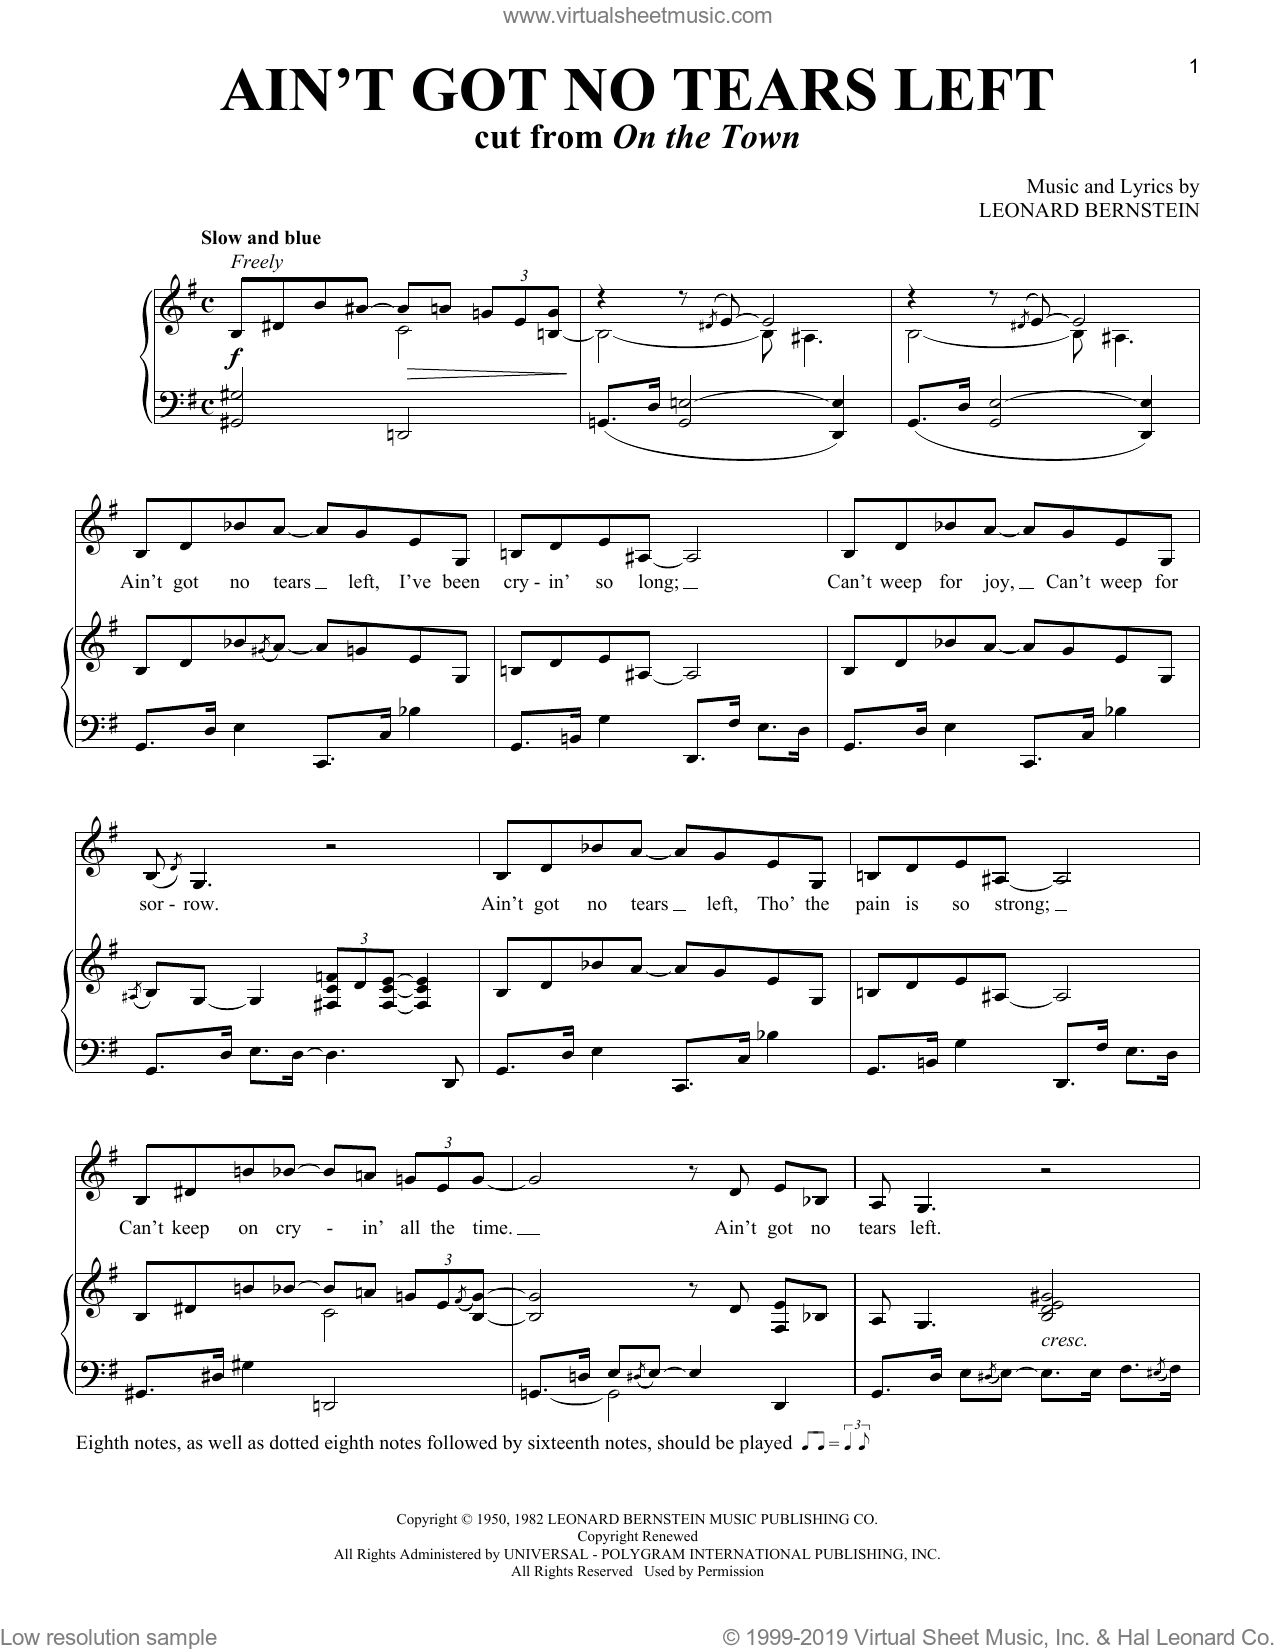 Ain't Got No Tears Left (from On the Town) sheet music for voice and piano by Leonard Bernstein and Richard Walters, intermediate skill level